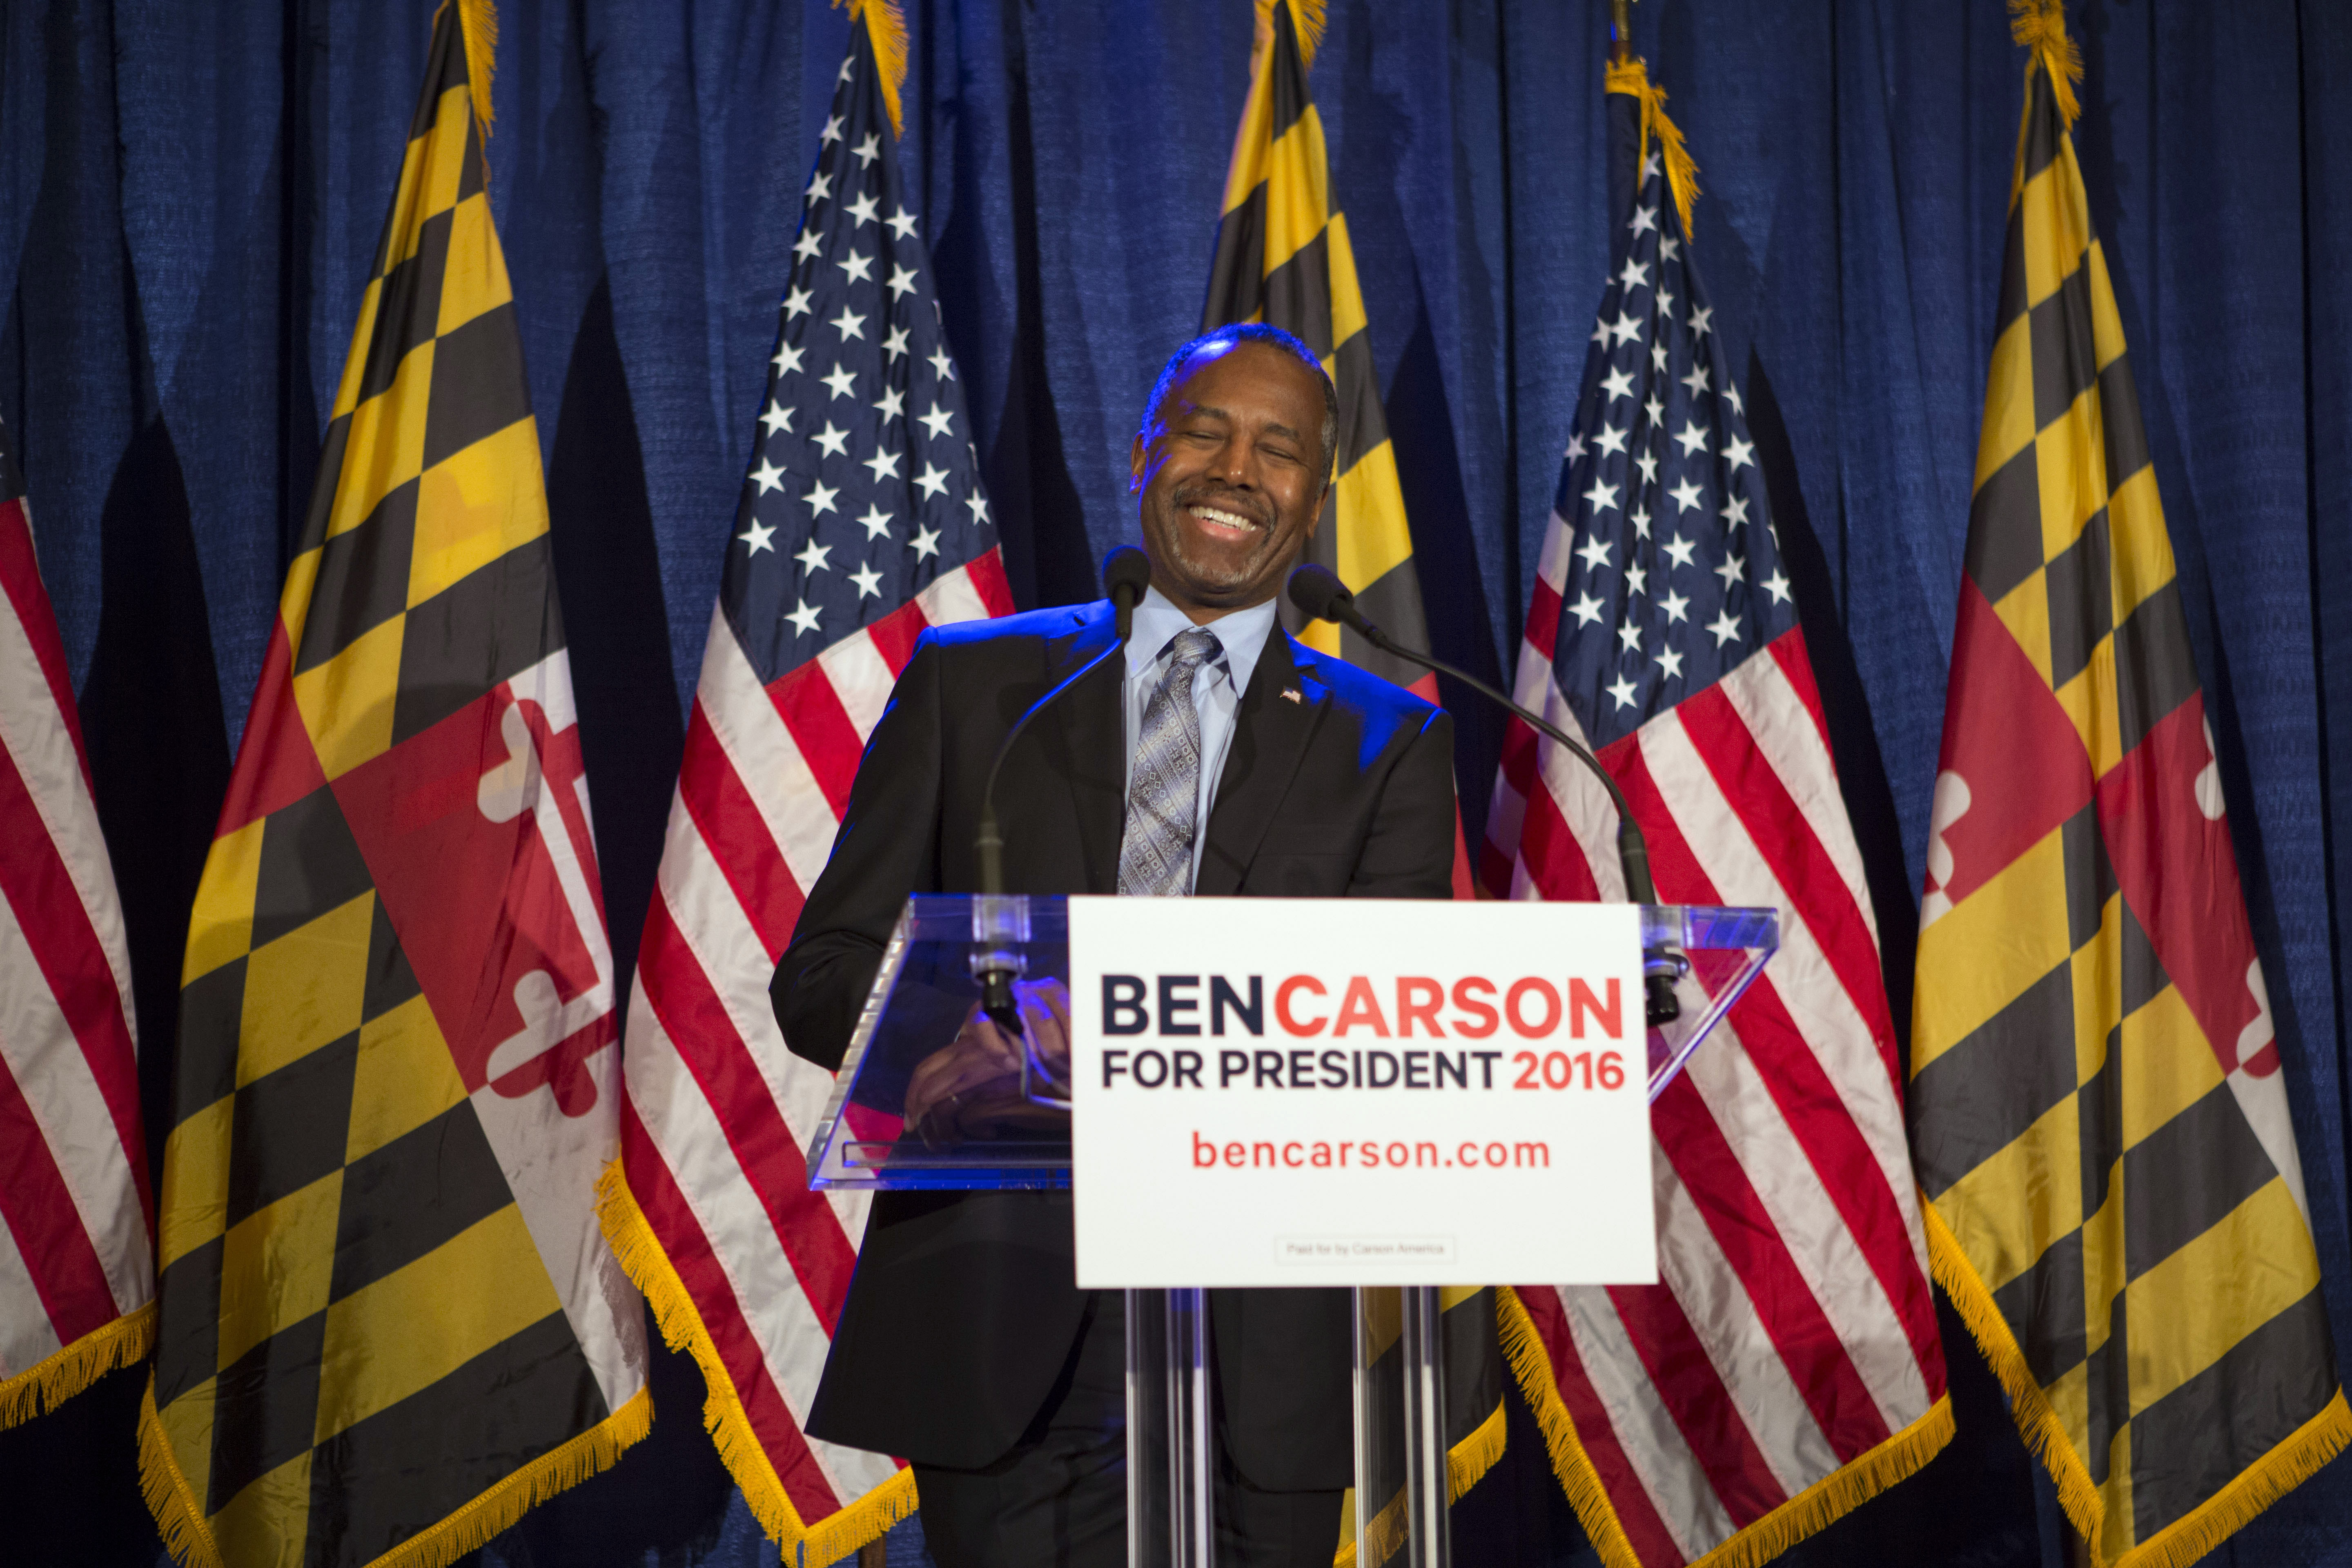 BALTIMORE, MD - MARCH 1: Republican candidate Dr. Ben Carson speaks to supporters at his campaign at his Super Tuesday election party at the Grand Hotel on March 1, 2016 in Baltimore, Maryland. Despite trailing the other Republican candidates on the most significant night of primary voting, Dr. Carson vowed to continue his campaign and remain in the running. (Photo by Jessica Kourkounis/Getty Images)